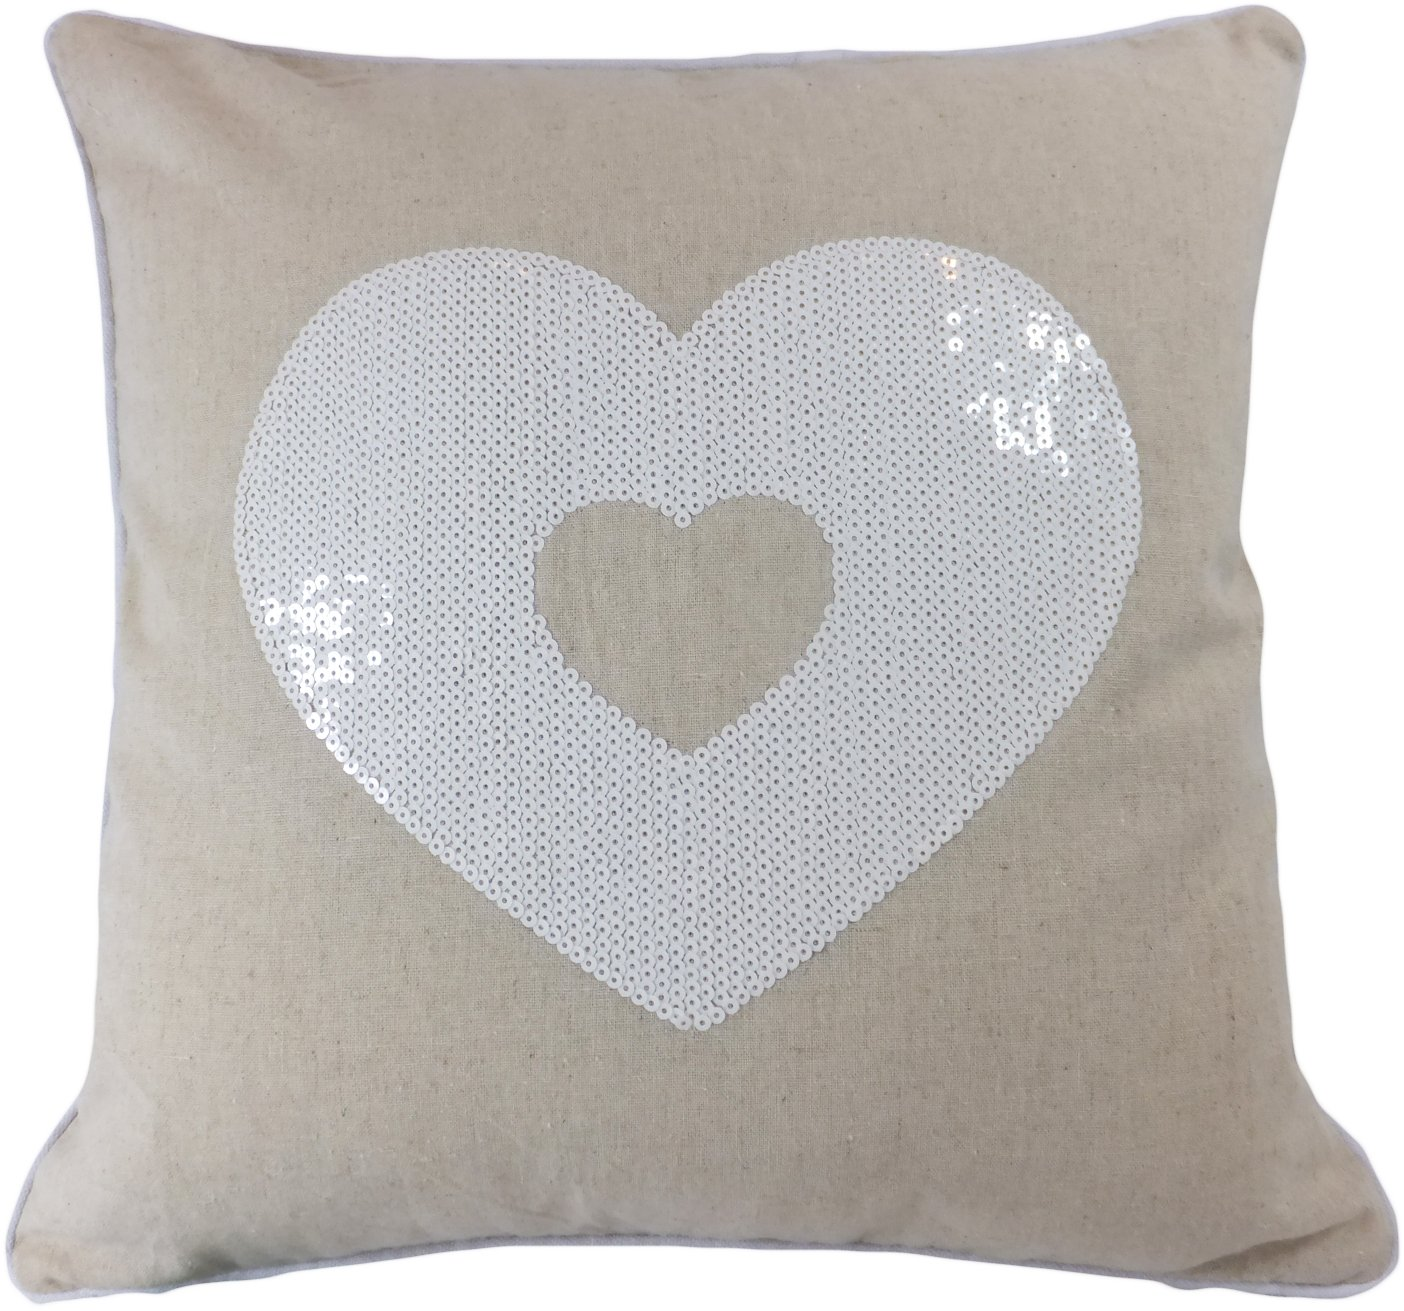 "Decorative White Sequins Love Symbol Floral Throw Pillow Cover 18"" White/beige - Sewn LOVE symbol white sequins in front Simple, elegant design makes the pillow a perfect match in any room Hidden zipper allows easy change of pillow inserts - living-room-soft-furnishings, living-room, decorative-pillows - 81DuMkfrFGL -"